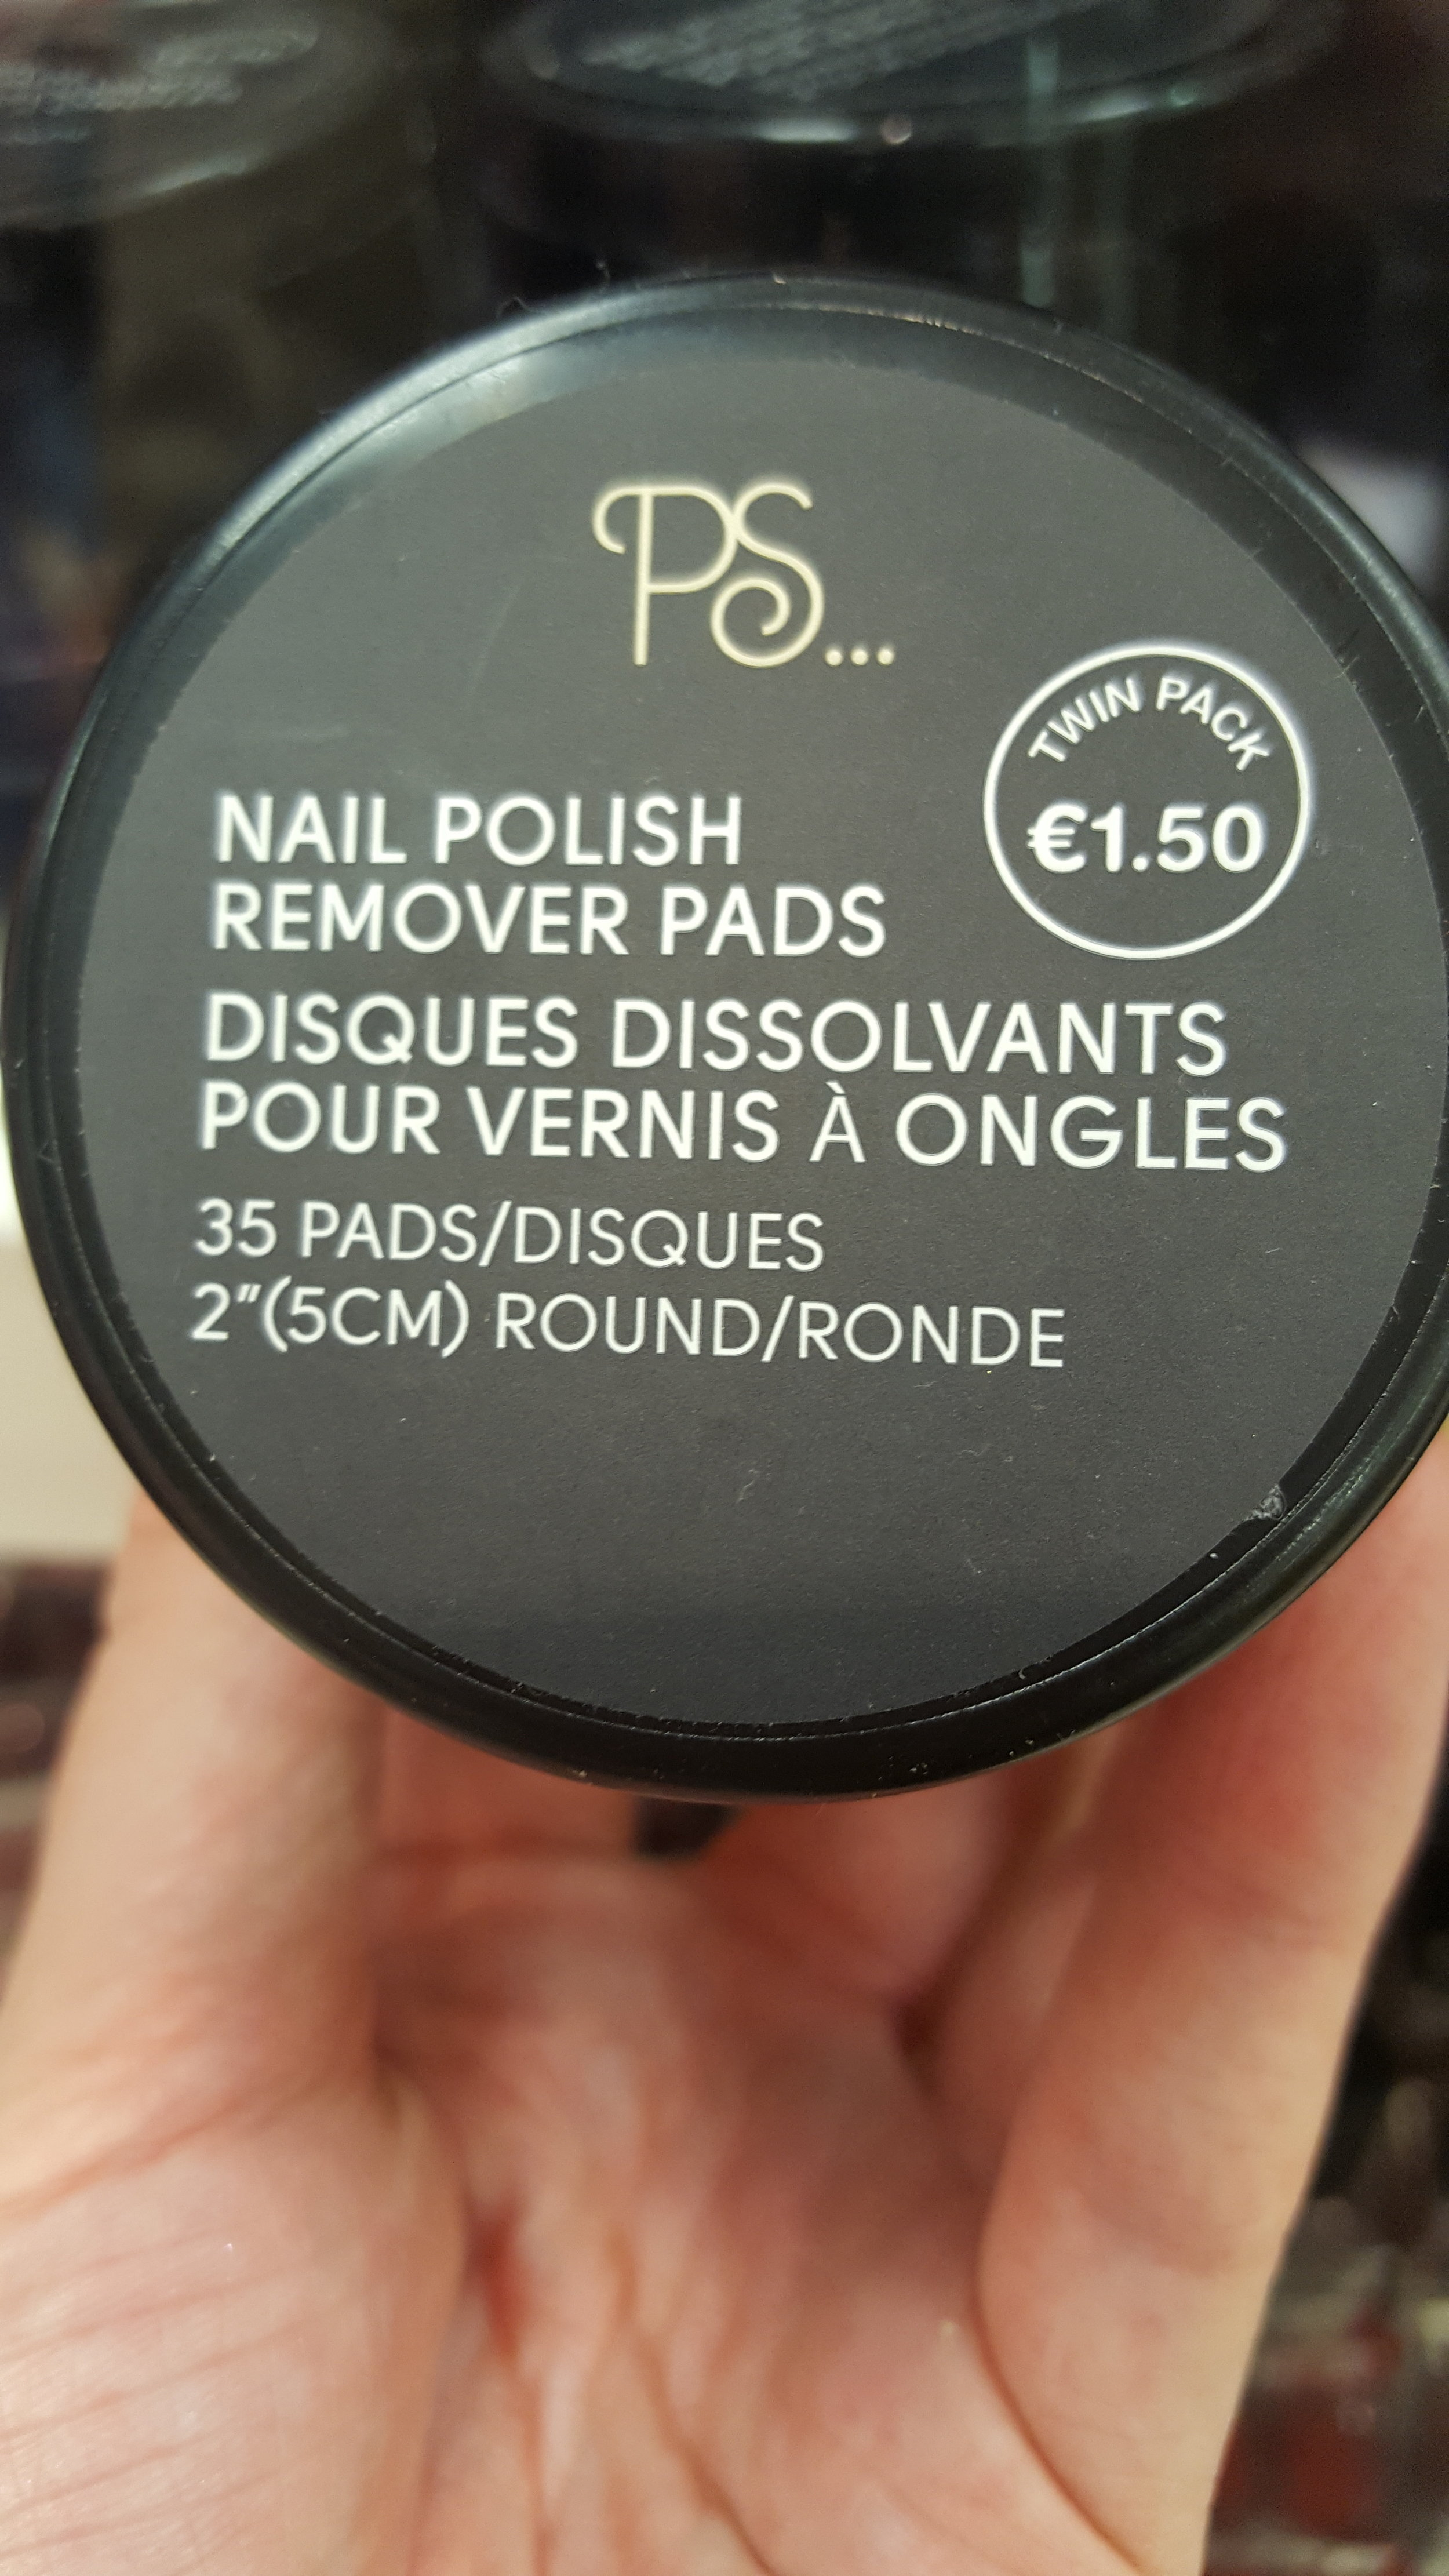 Twin pack of nail polish remover pads. Handy to pop into your handbag or have on your nightstand for those of us who are lazy about removing chipped polish.(Guilty)